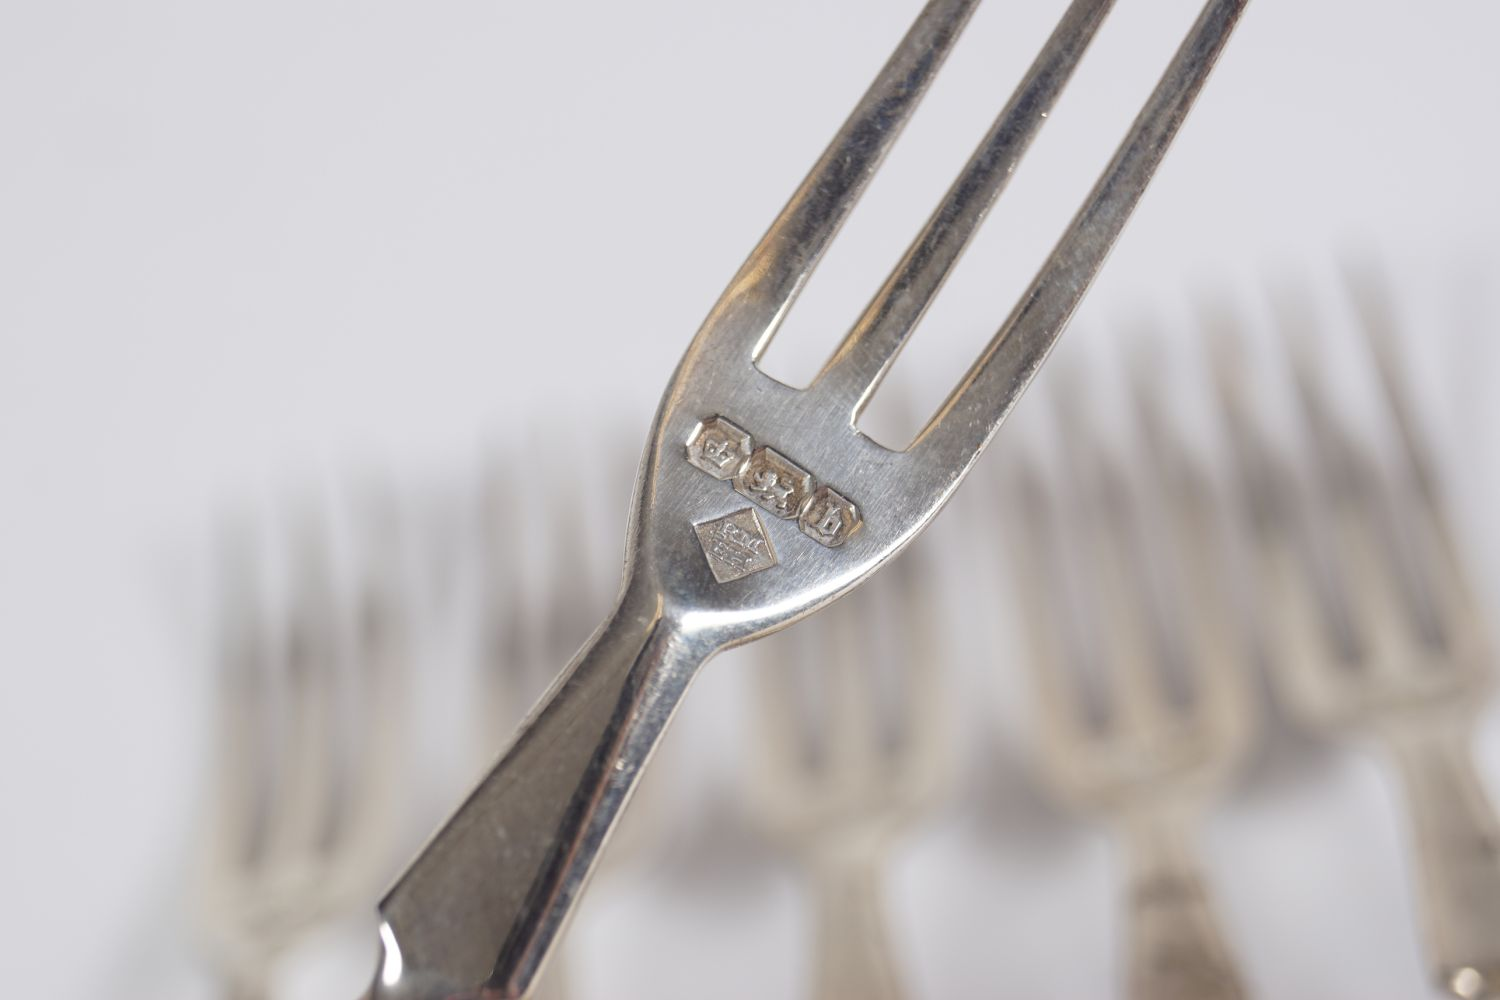 6 SILVER OYSTER FORKS - Image 4 of 4